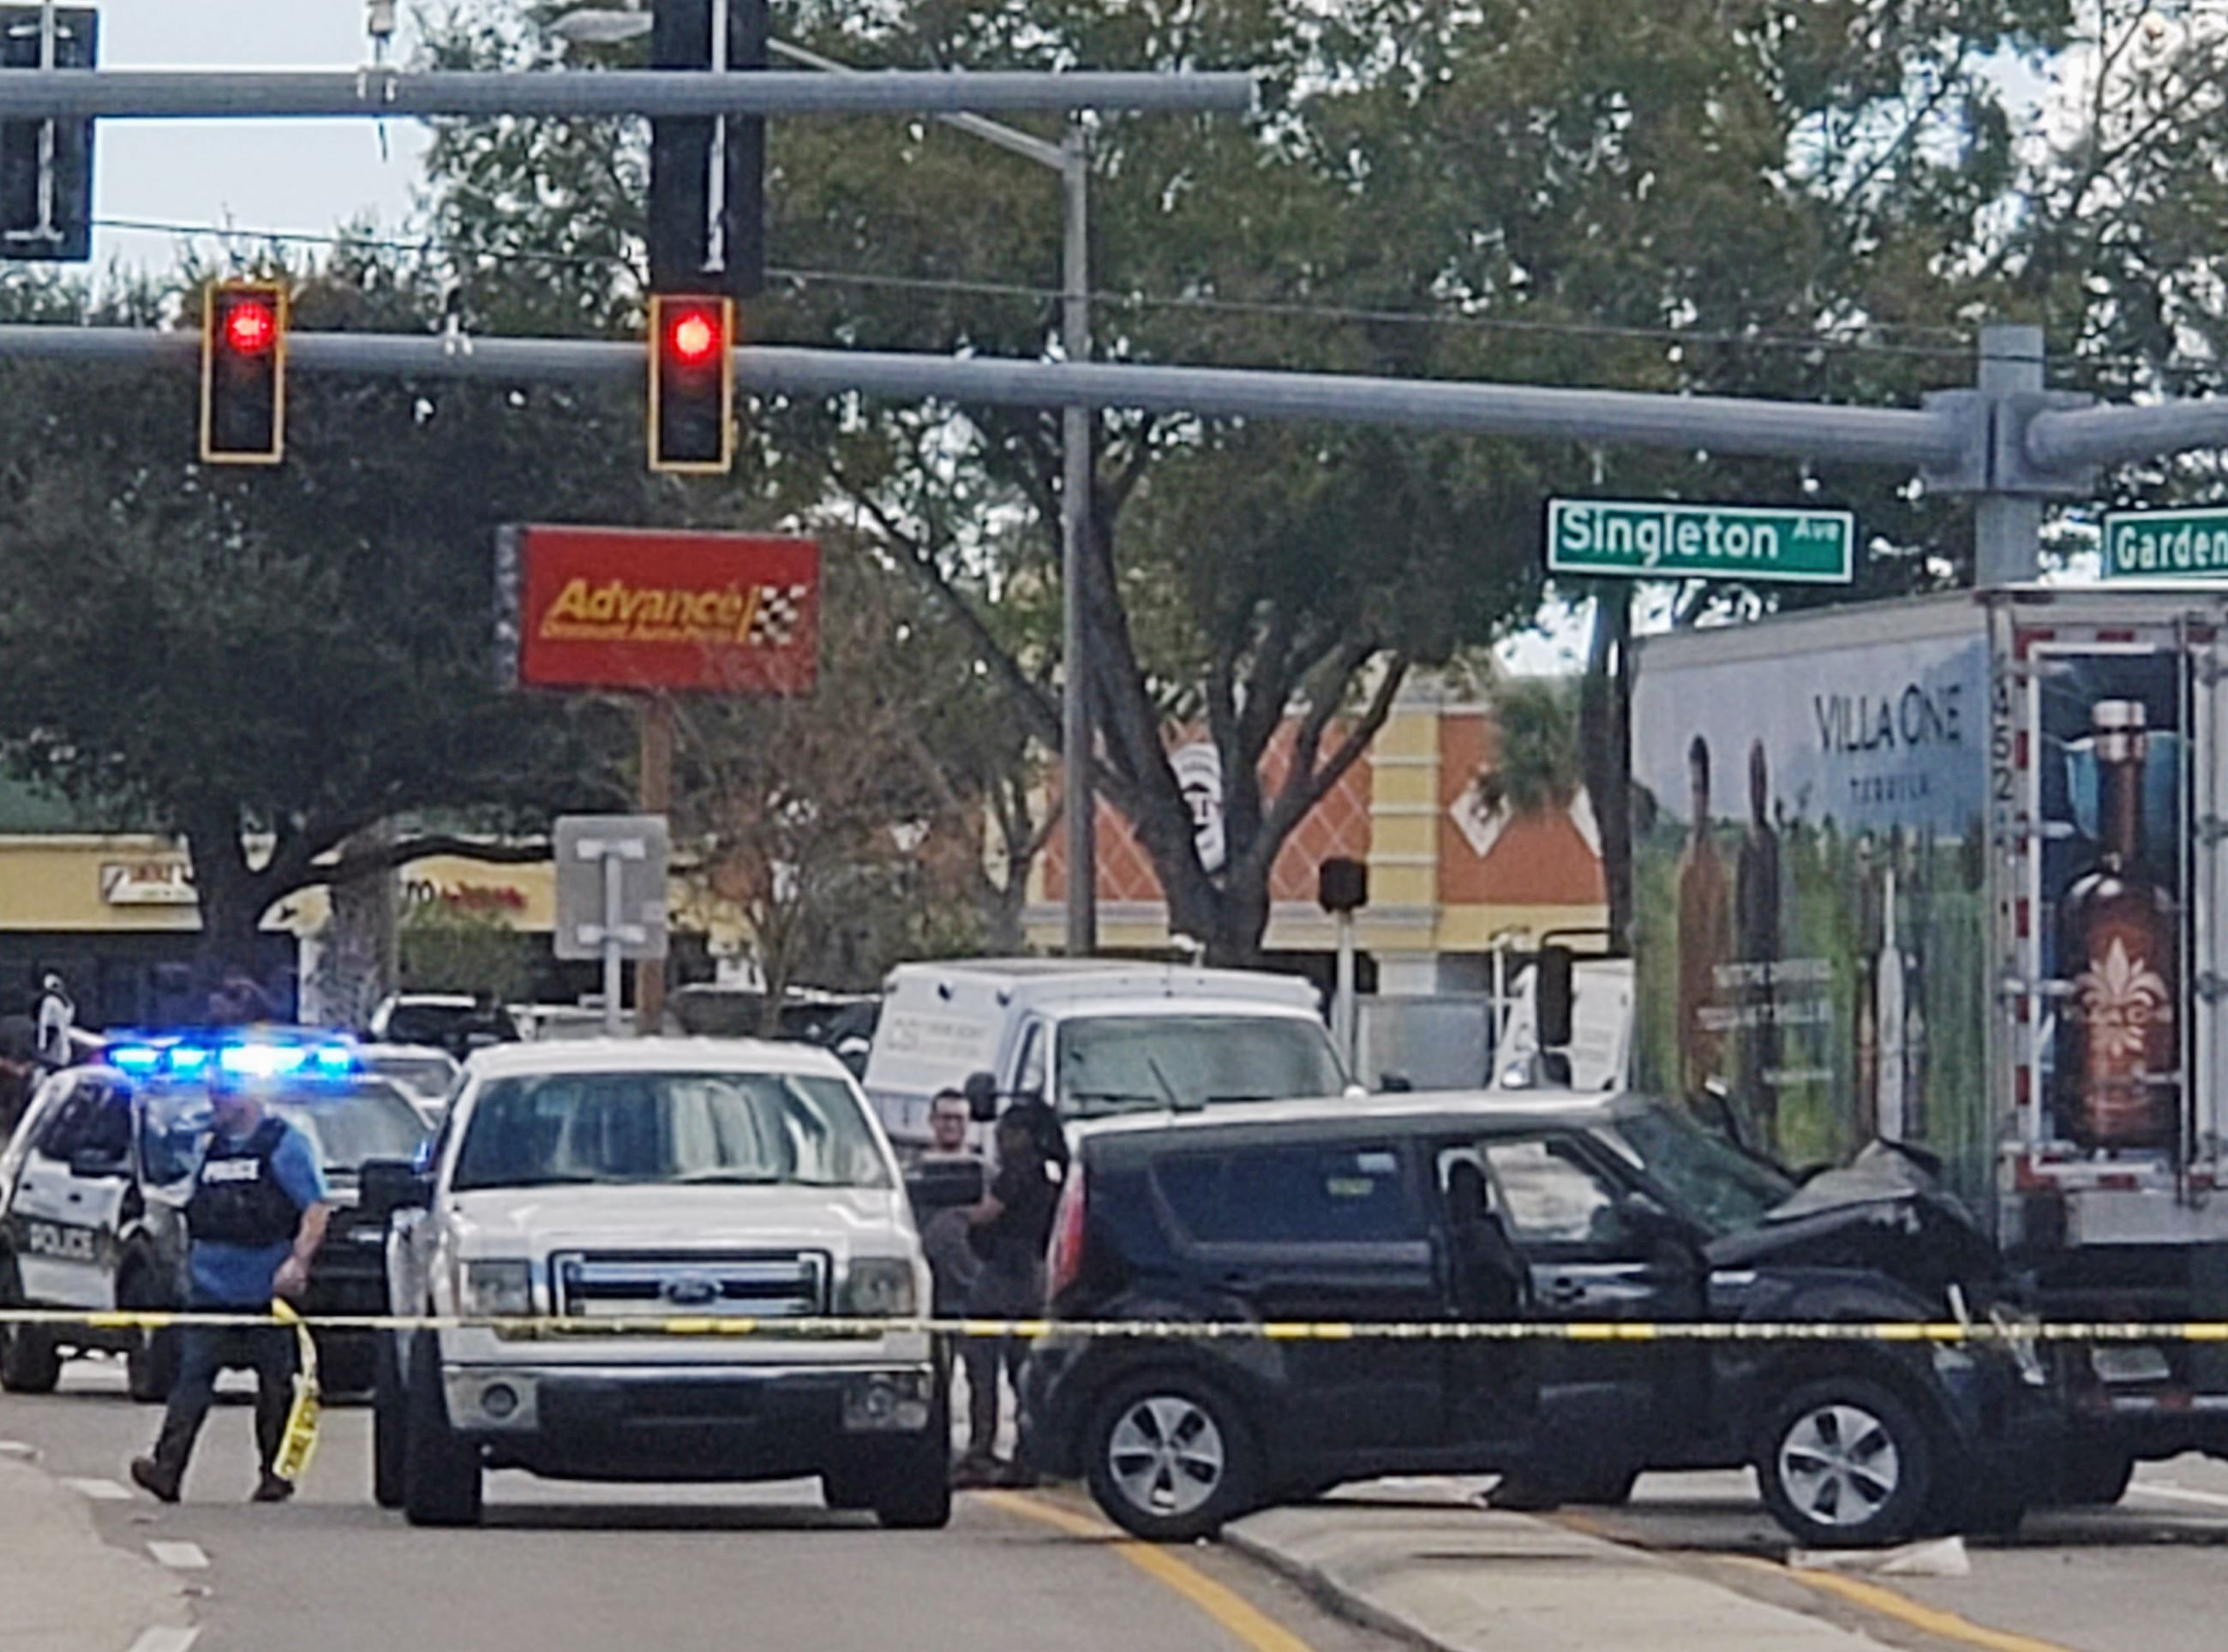 Traffic Crash at Garden St and Singleton Ave